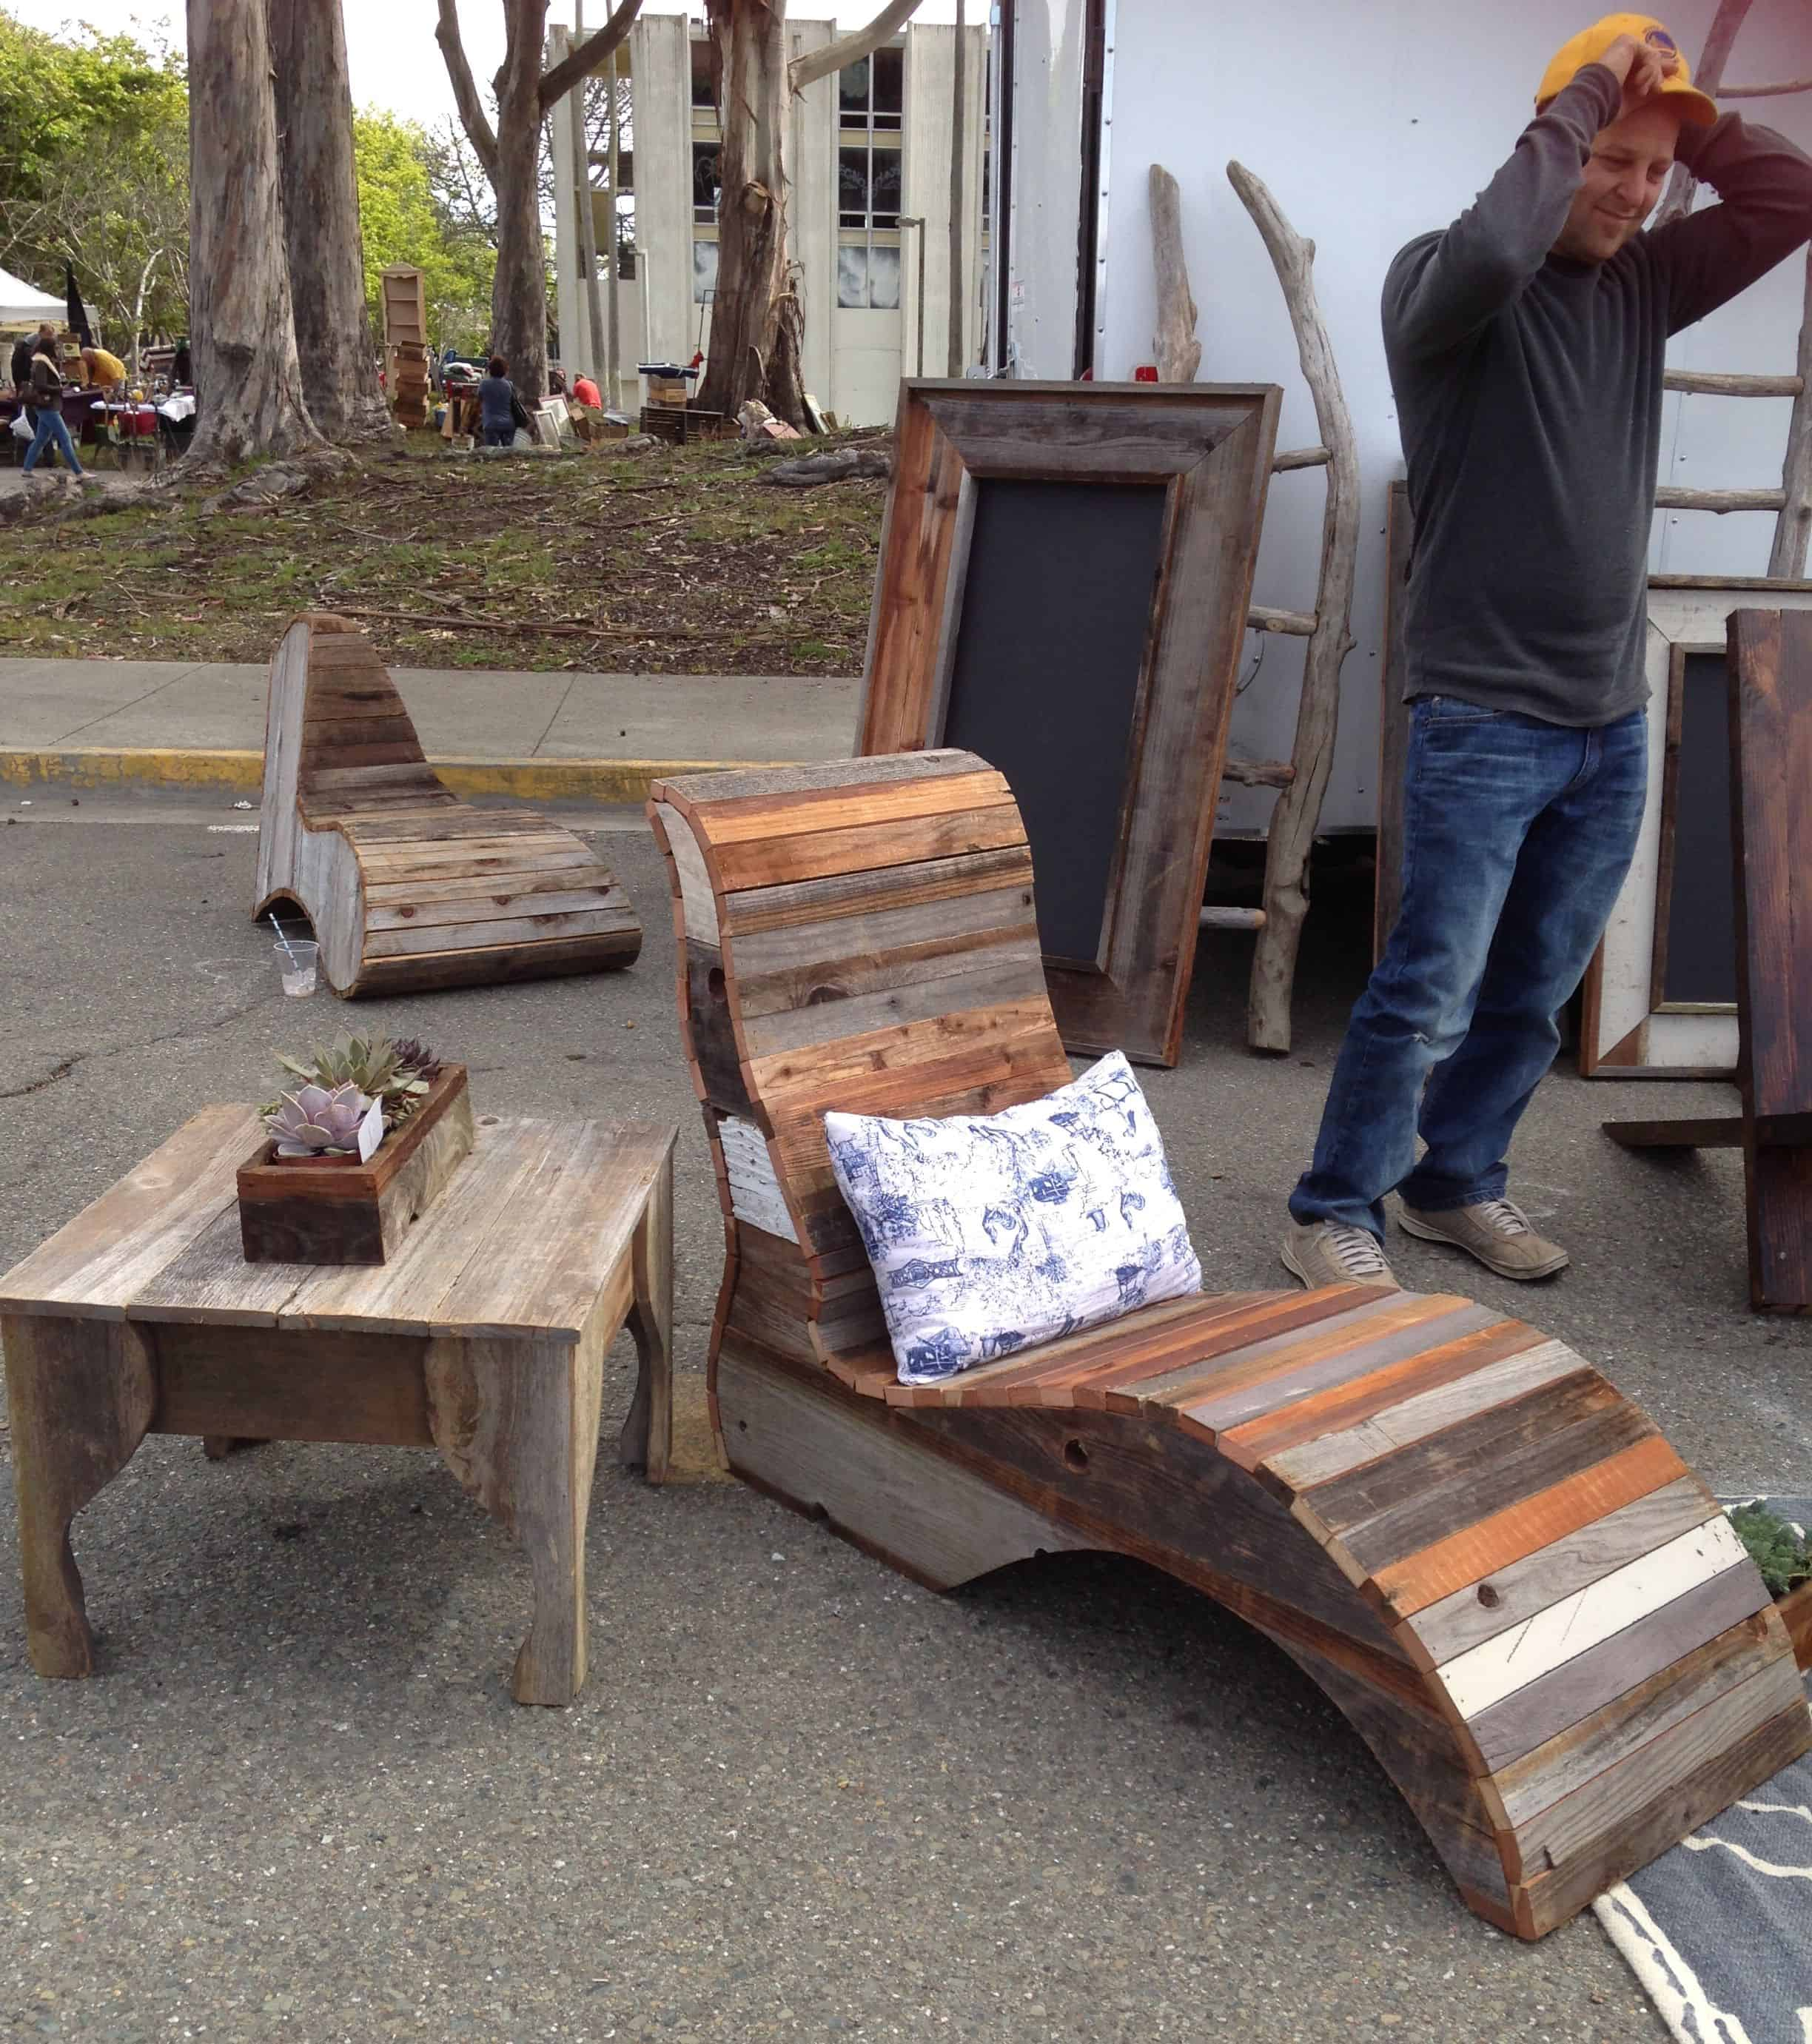 Reuse Reduce Recycle at Treasure Island Flea